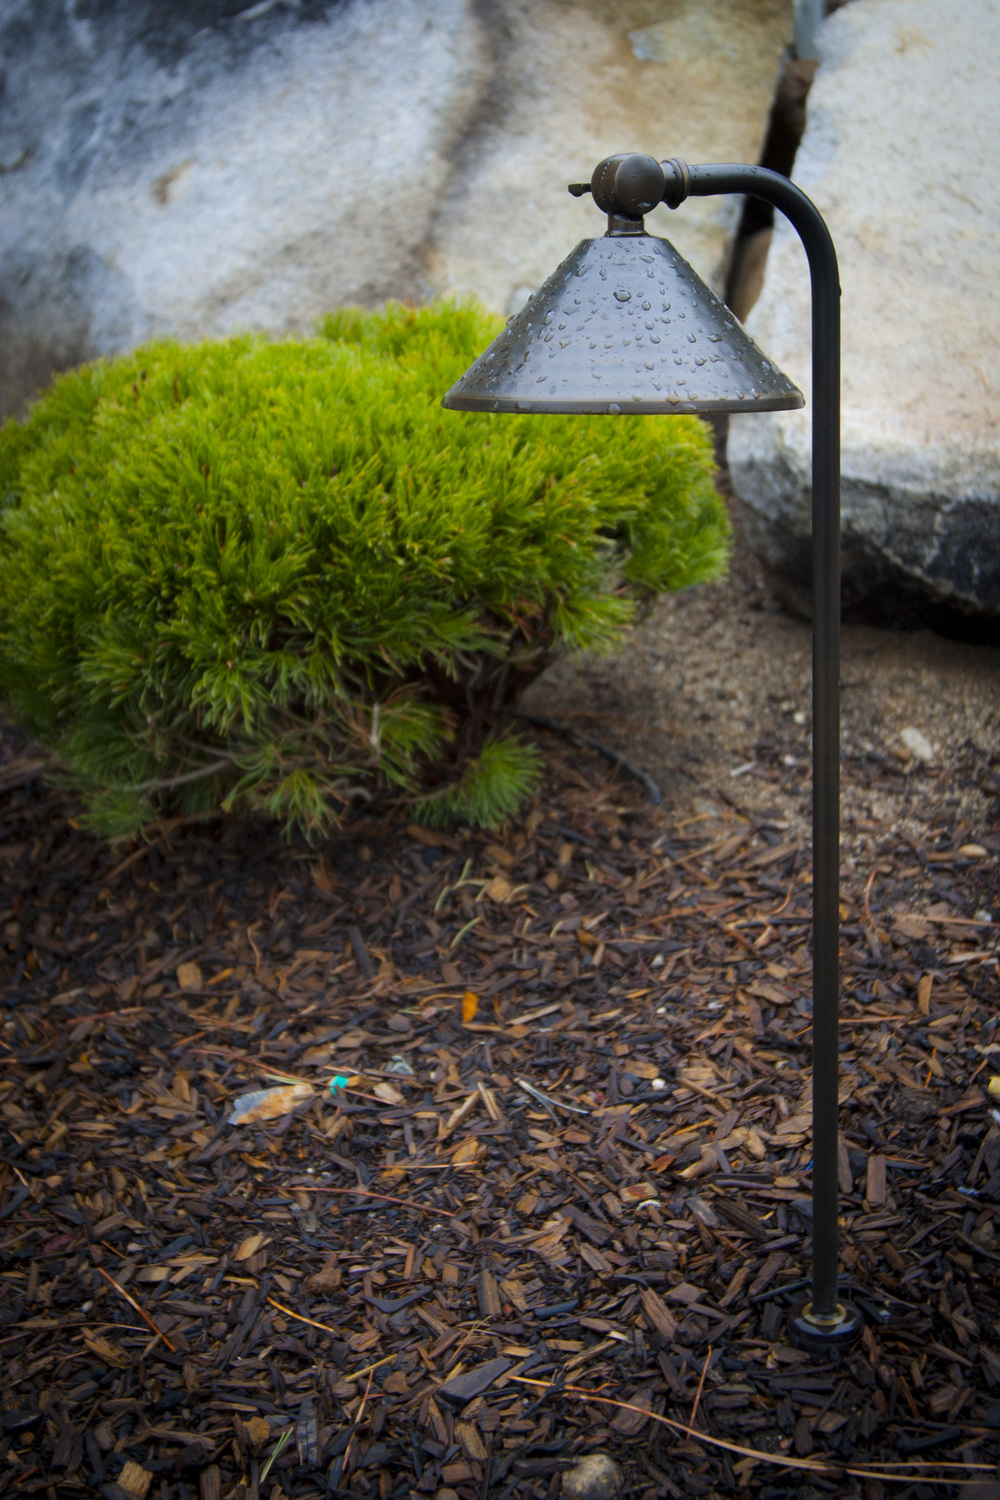 landscaping light1001.jpg